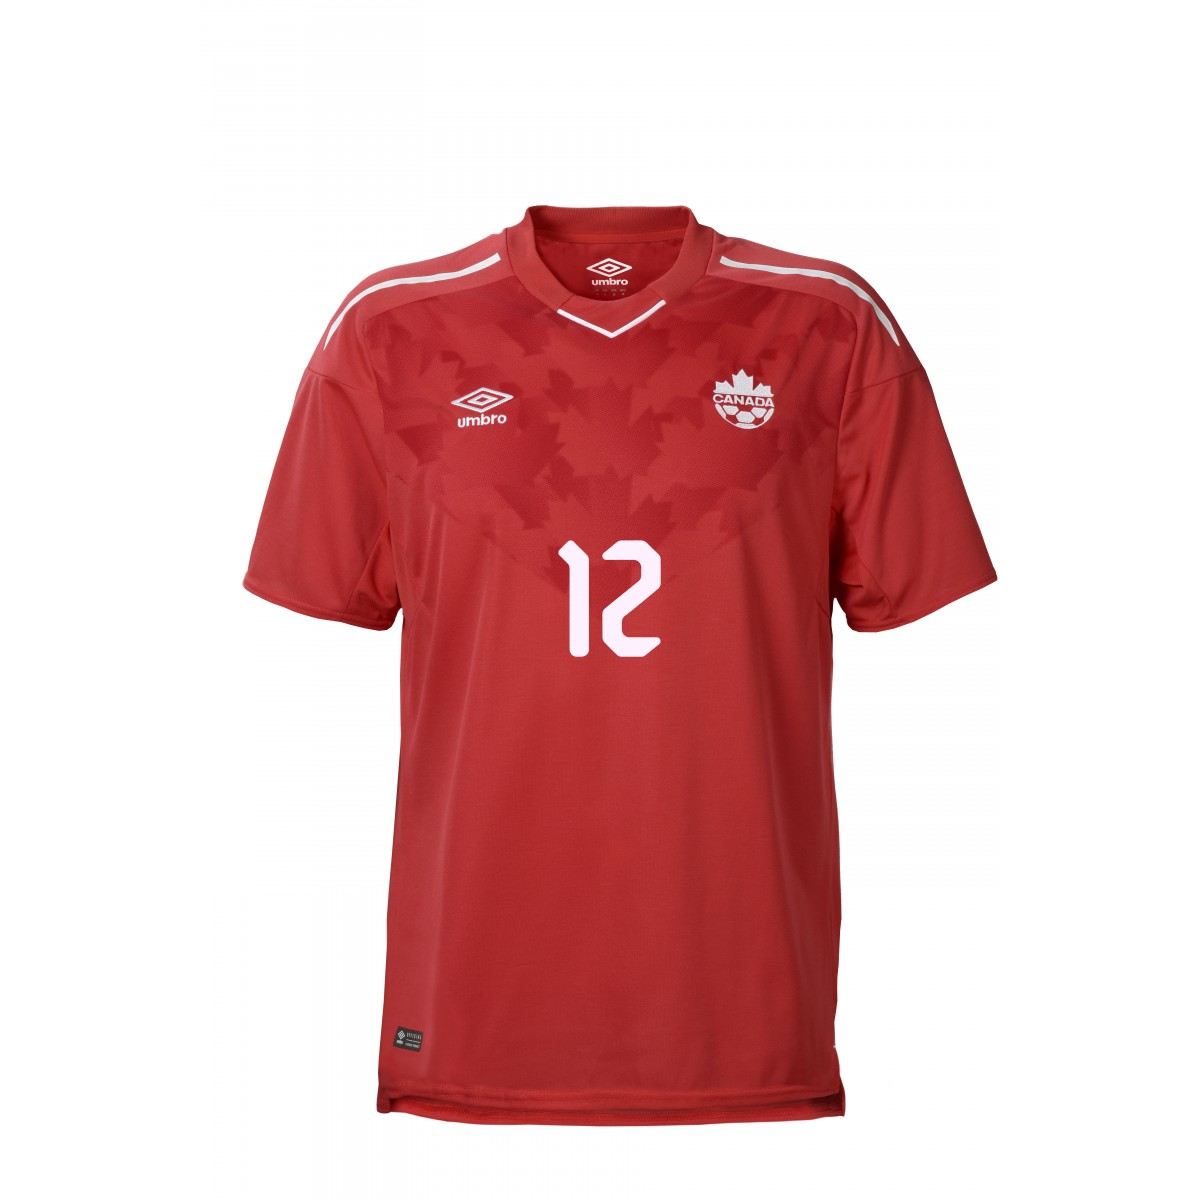 3ff36ddc998 Canada 2018m 2019 Umbro Home Soccer Jersey, Football Kit, Shirt, Maillot